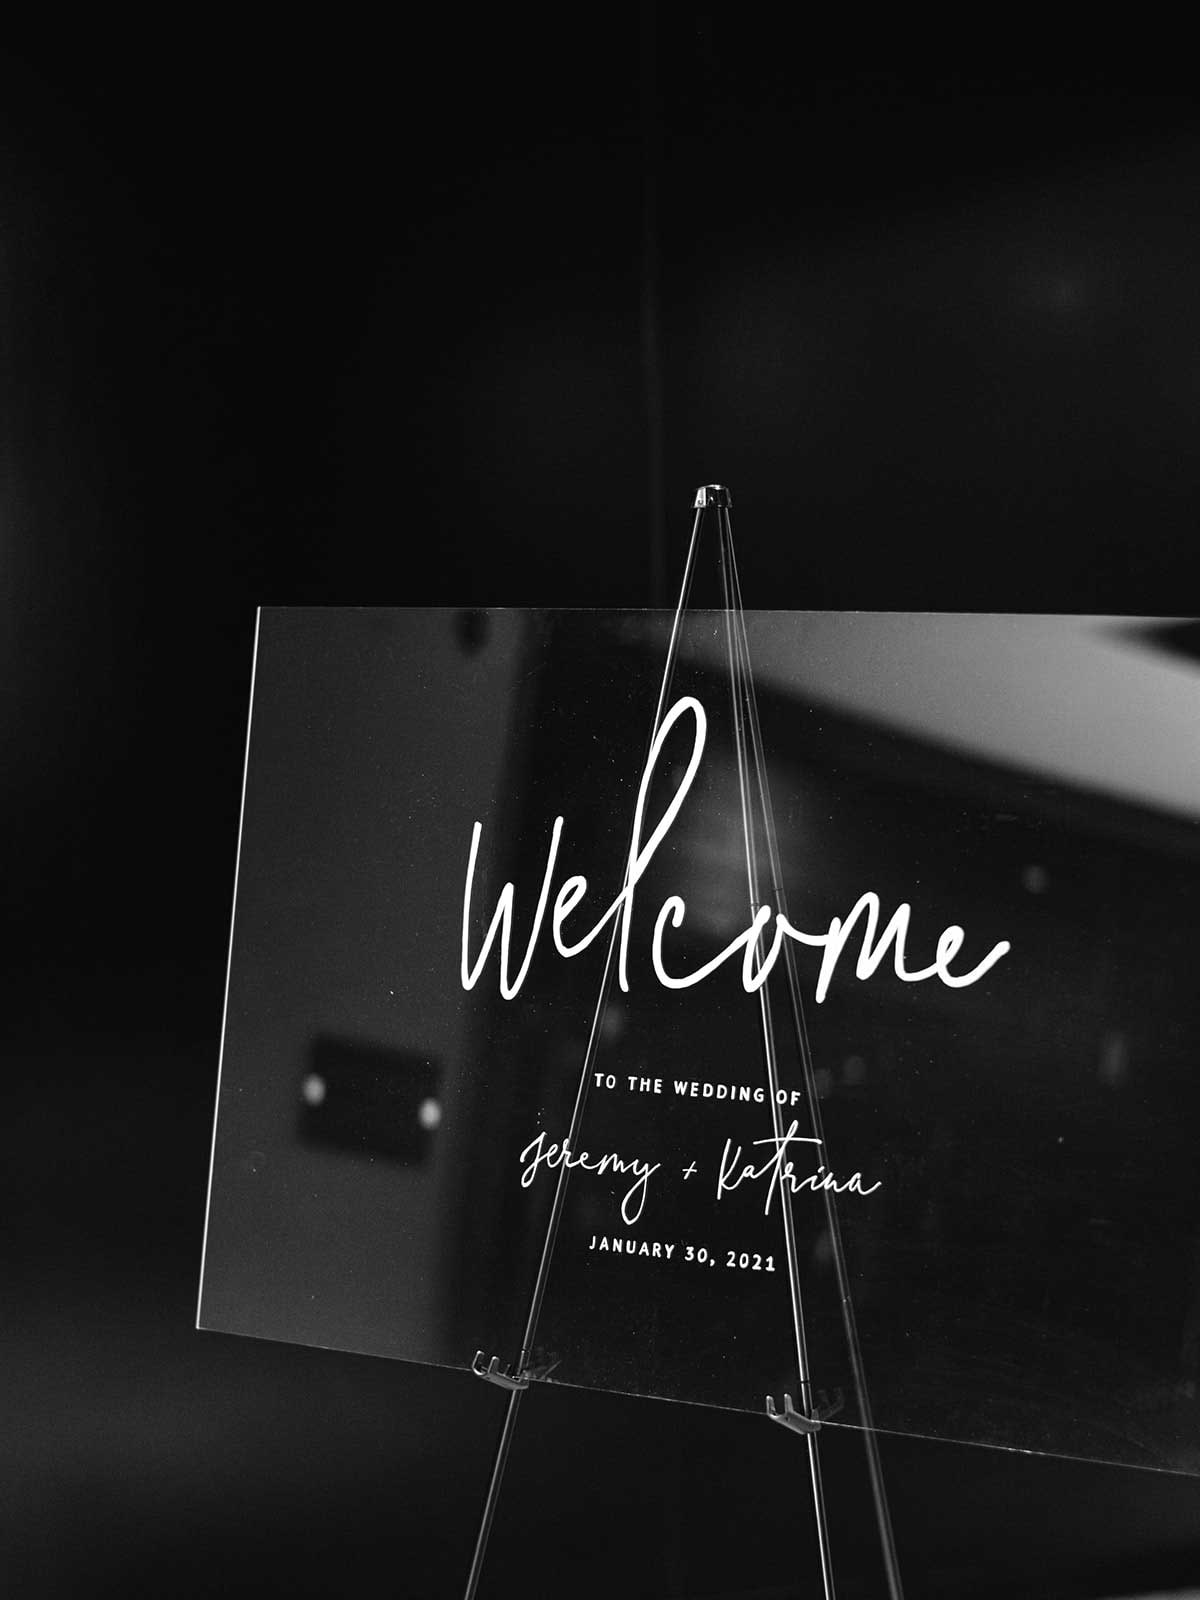 acrylic welcome sign with black background.